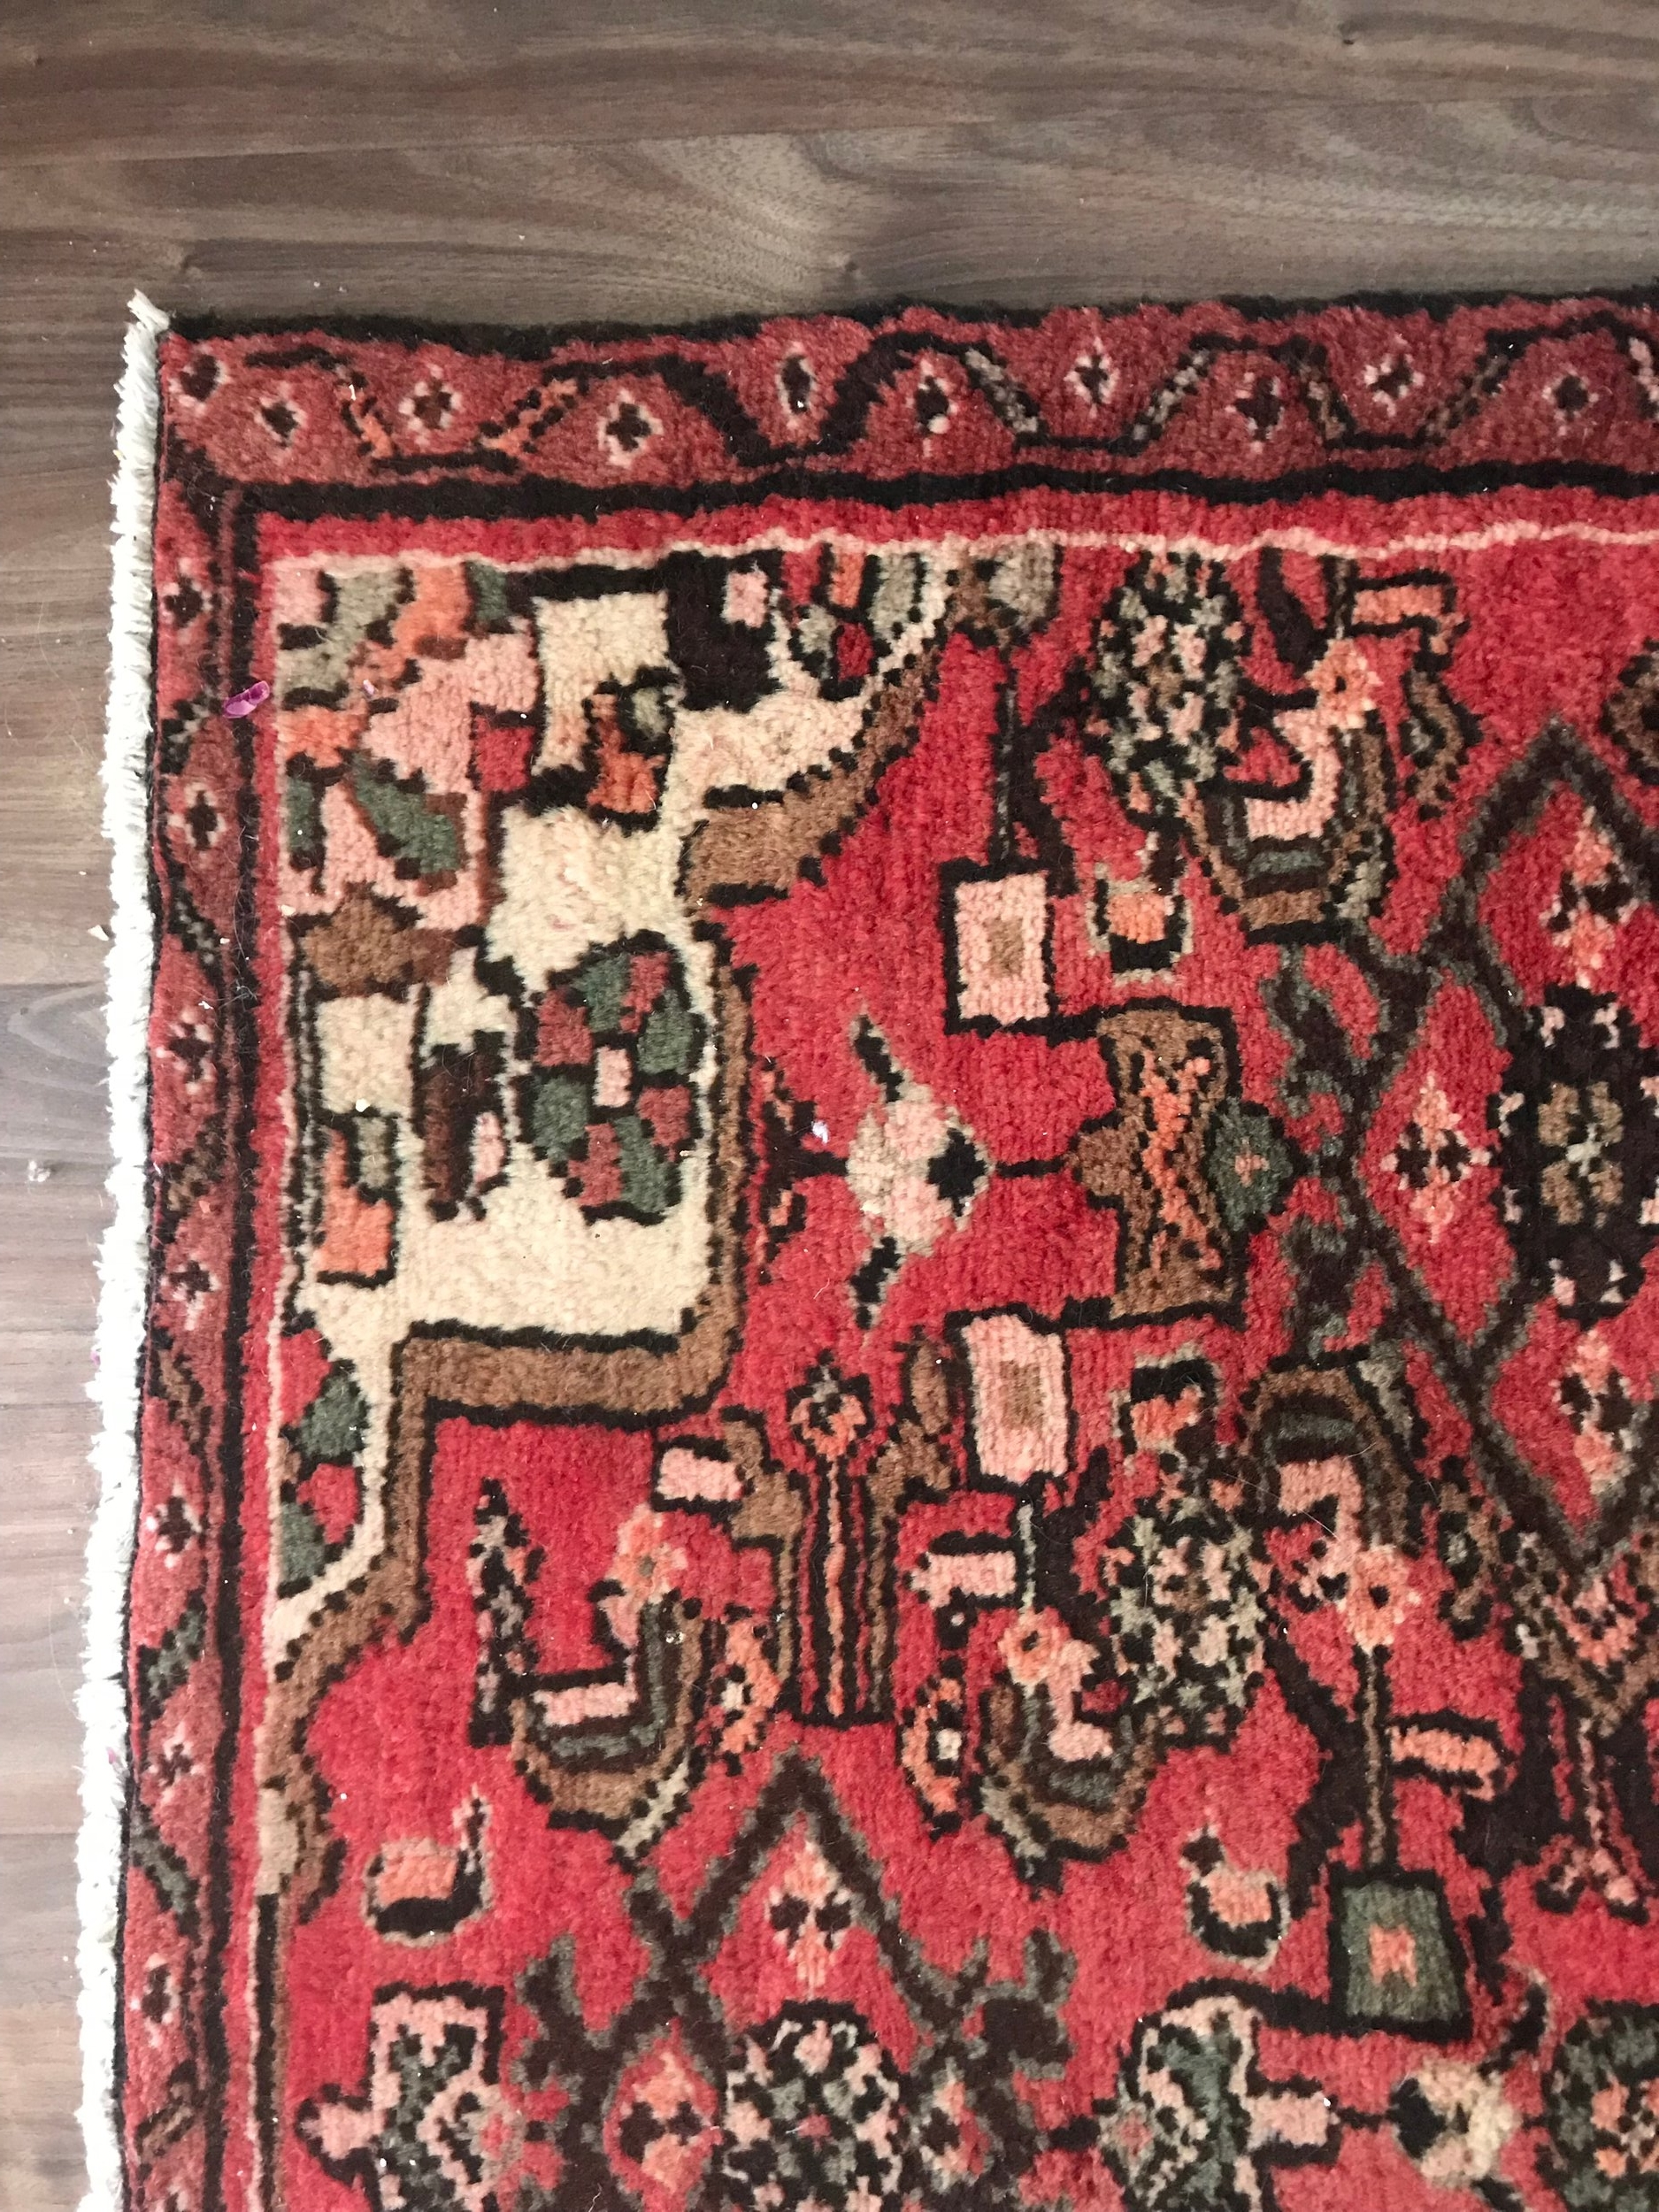 The most beautiful runner ever from The London Persian Rug Company.